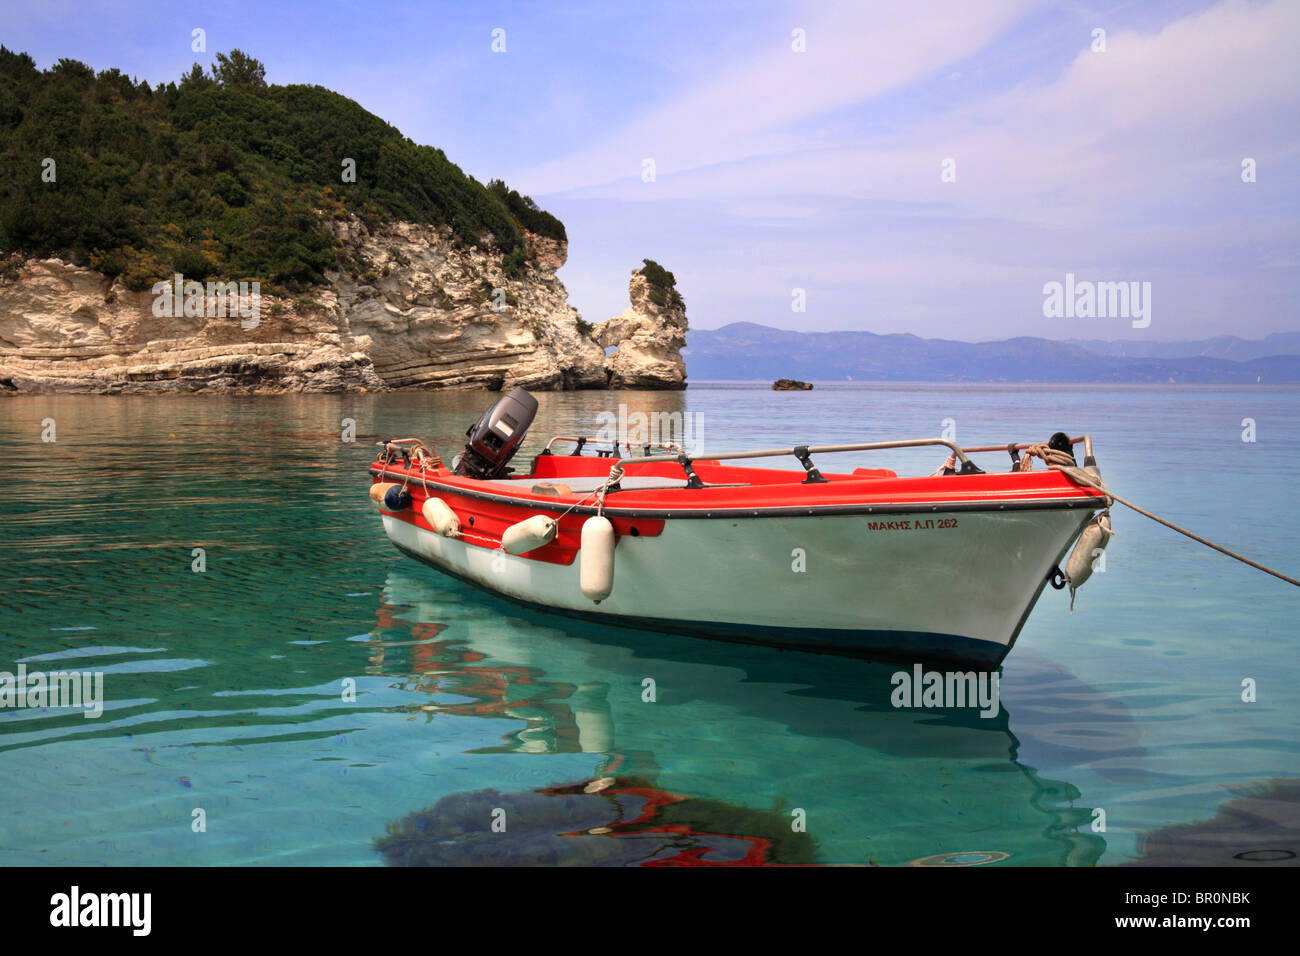 Fishing boat moored in a sheltered bay on Antipaxos, Greece. A small Island off the coast of Paxos - Stock Image